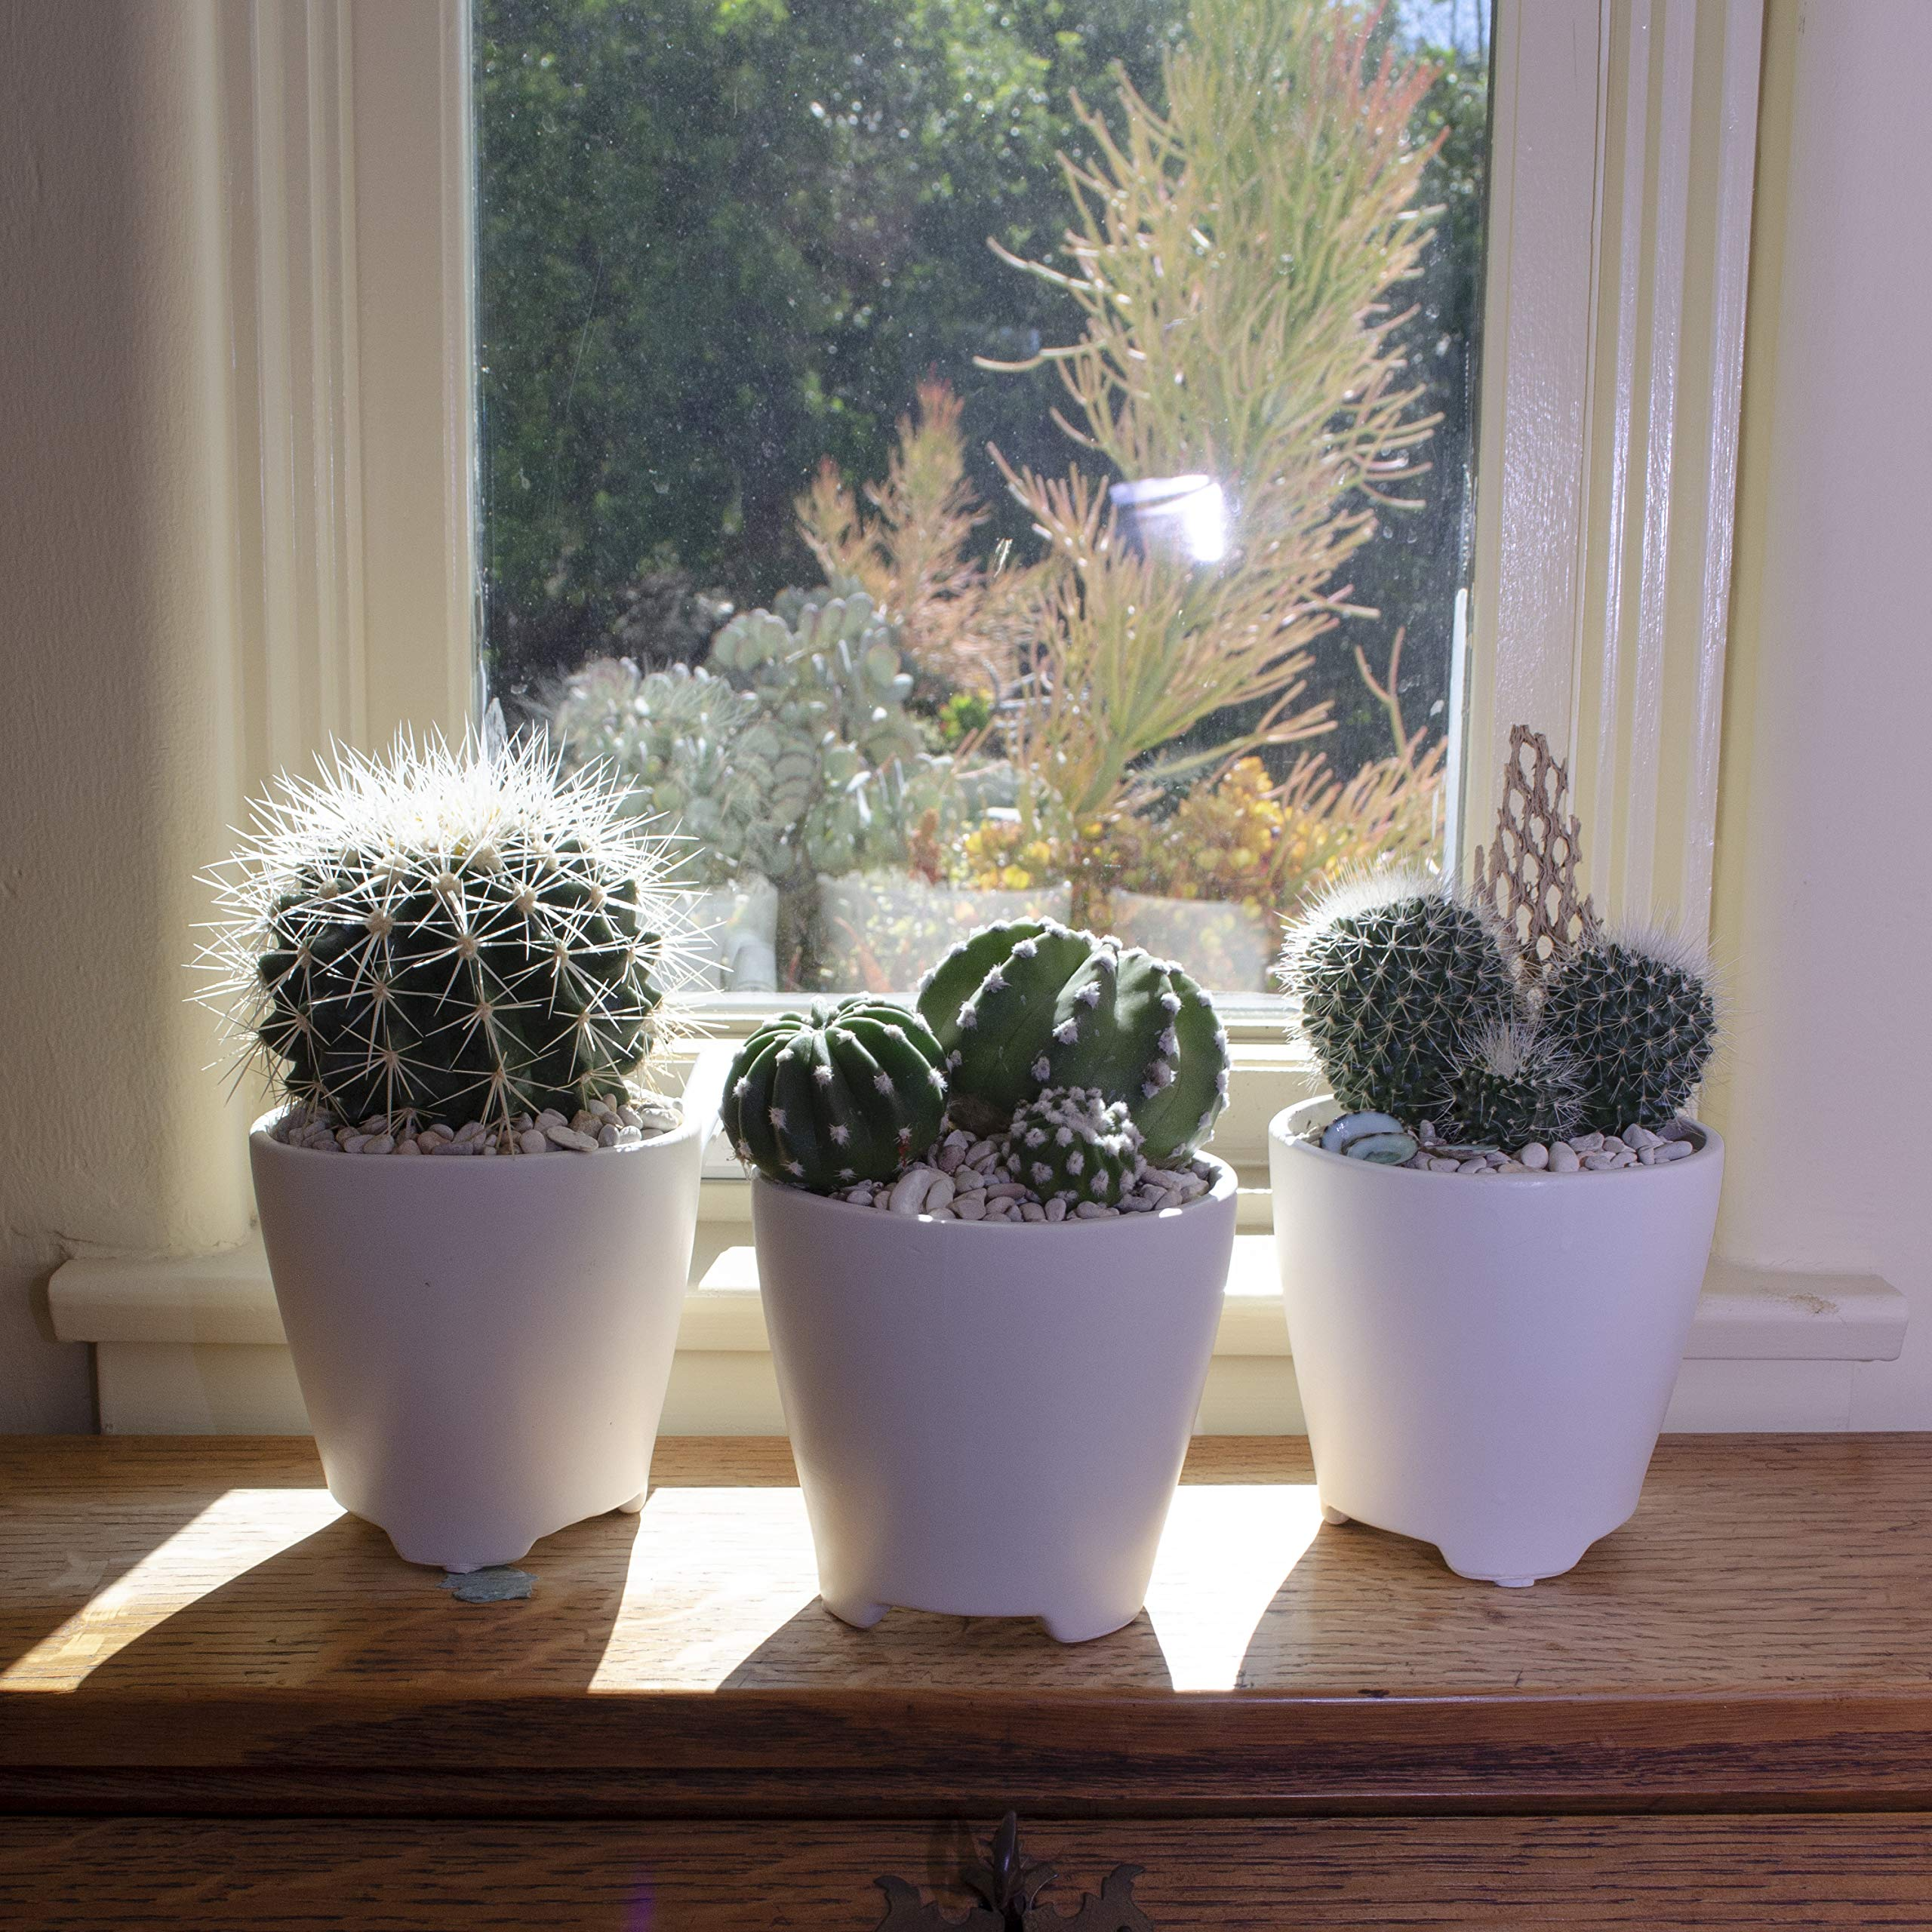 Altman Plants Assorted Live Cactus Collection large for planters or gifts, 3.5'', 6 Pack by Altman Plants (Image #5)